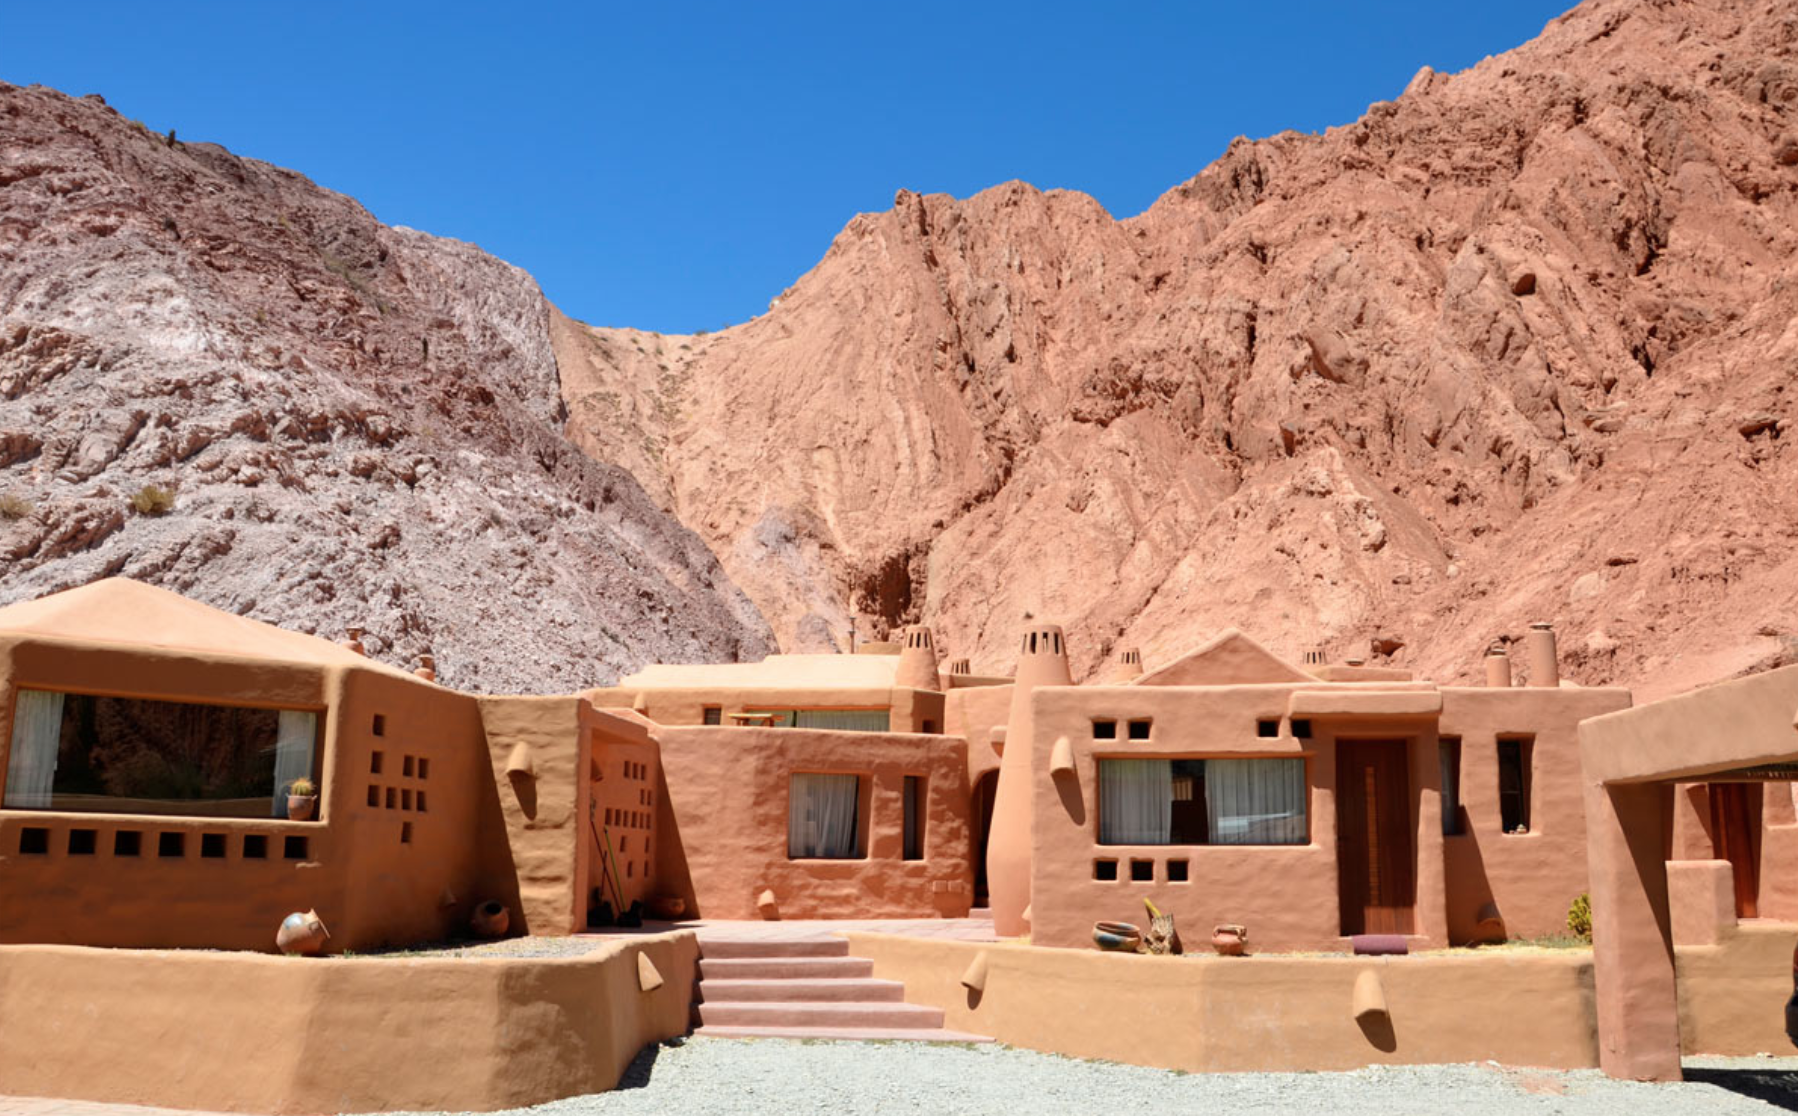 Road-tripping the North of Argentina: Purmamarca